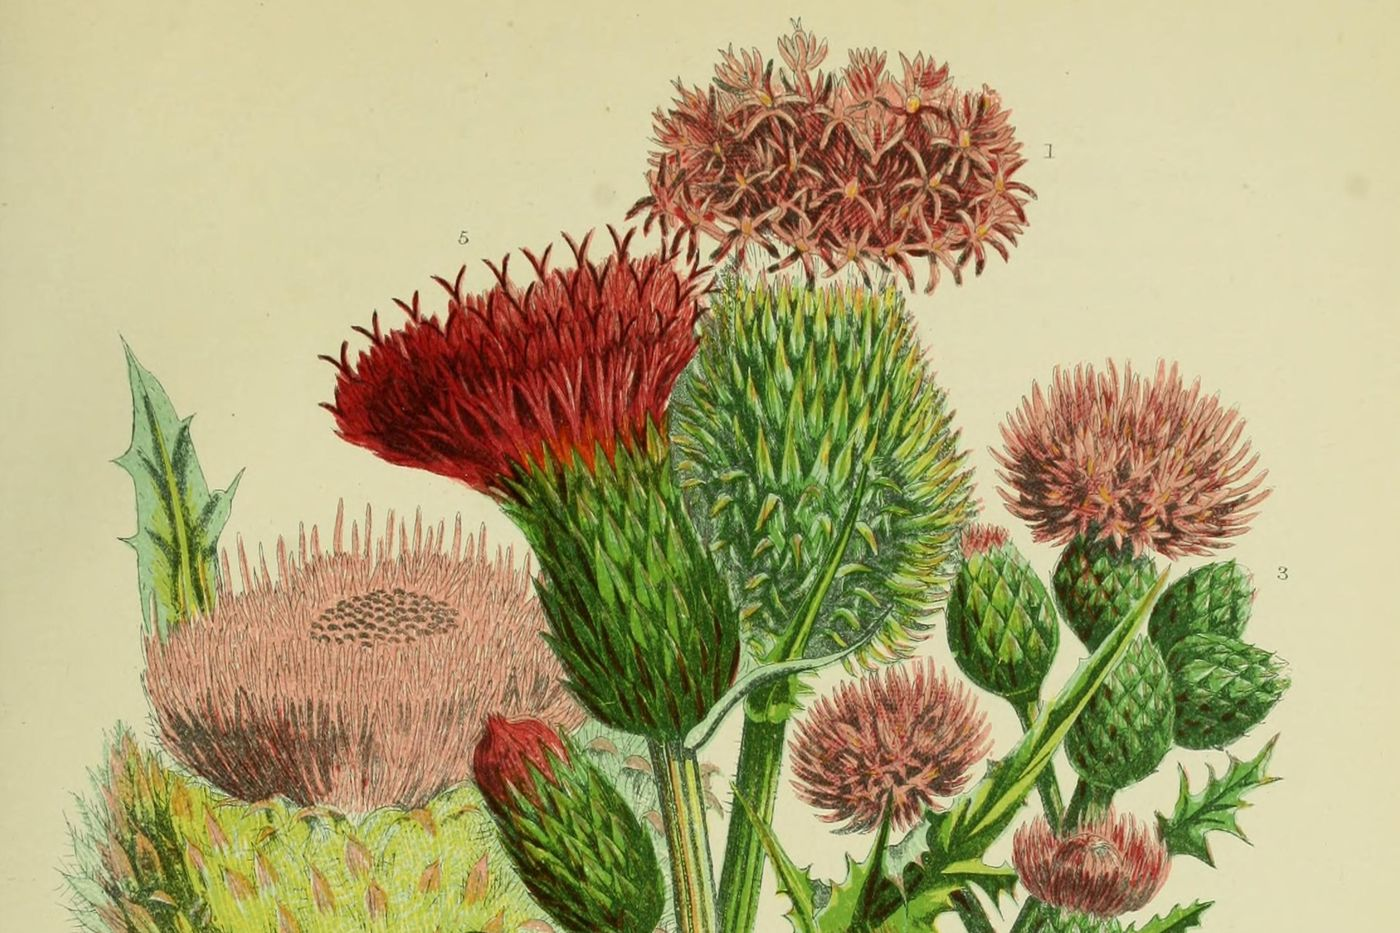 A botanical illustration of a bunch of thistles, some that are red, some a more subdued pink. Some of the stalks are covered in thorns and have green bulbs near the top.